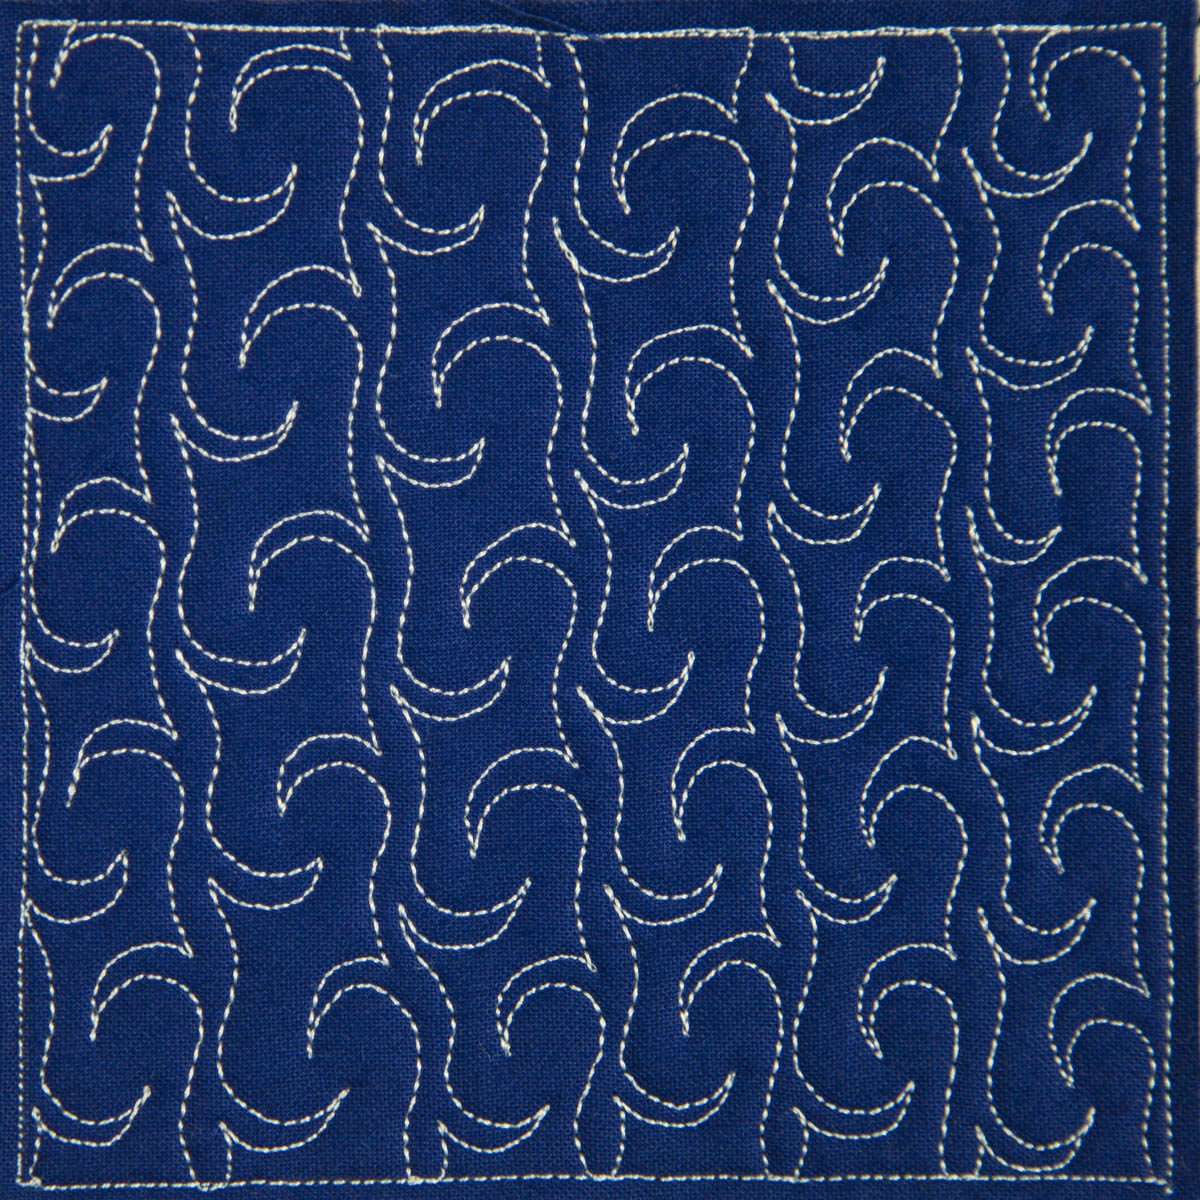 Free Motion Quilting Designs For Sashing : The Free Motion Quilting Project: Day 21 - Wave Chain